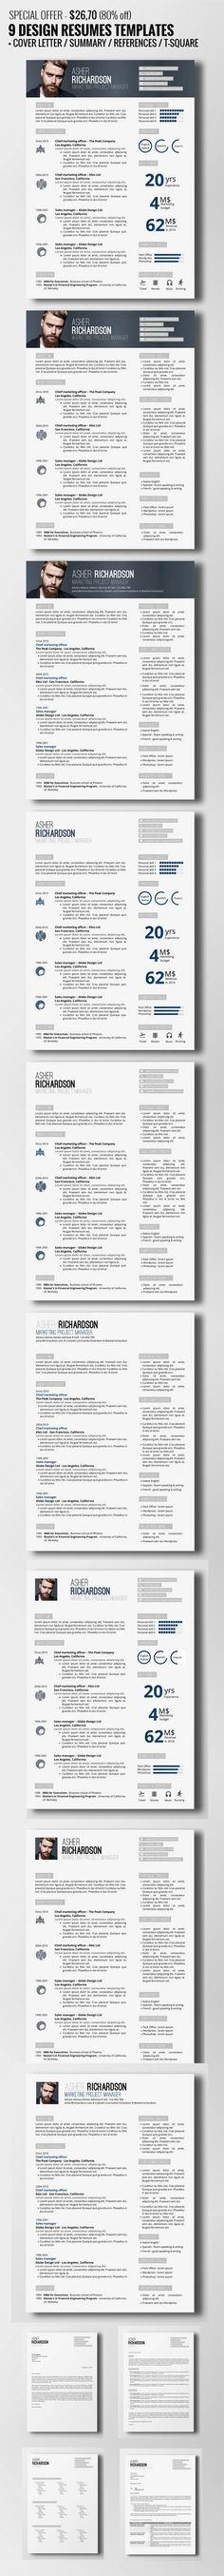 435 best Resume images on Pinterest Resume design, Design resume - resume examples for highschool students